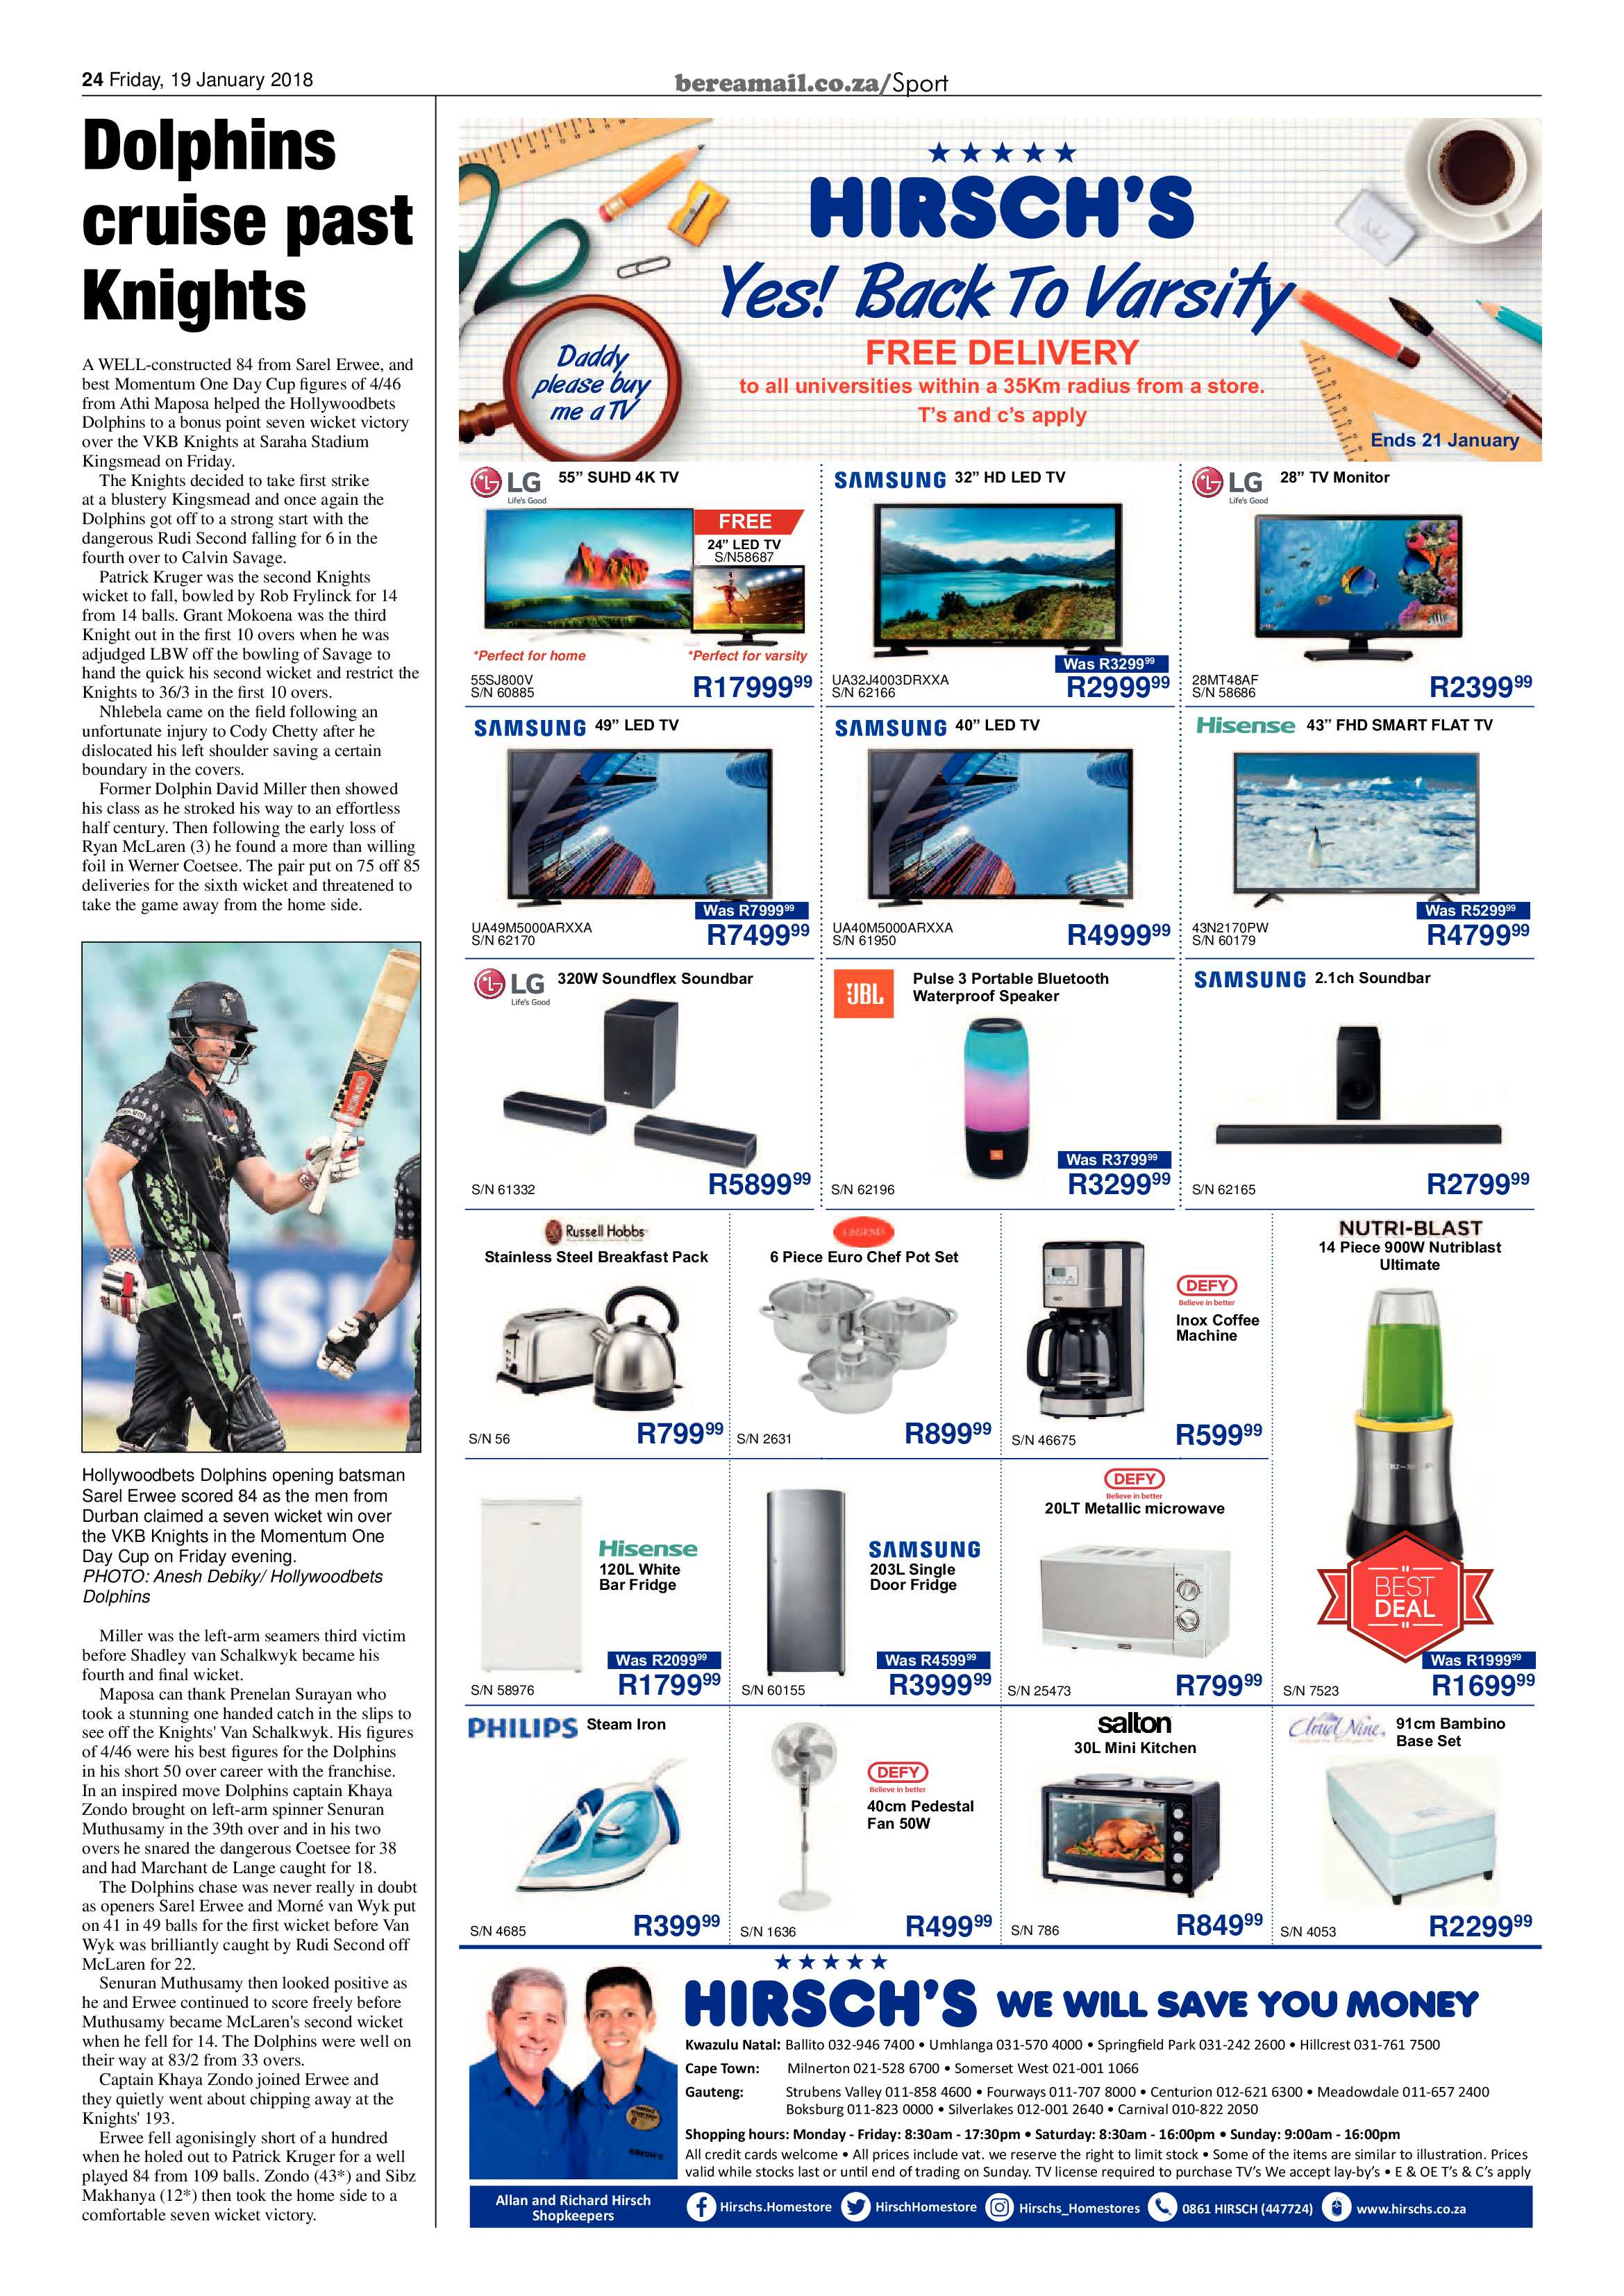 berea-mail-19-january-2018-epapers-page-24